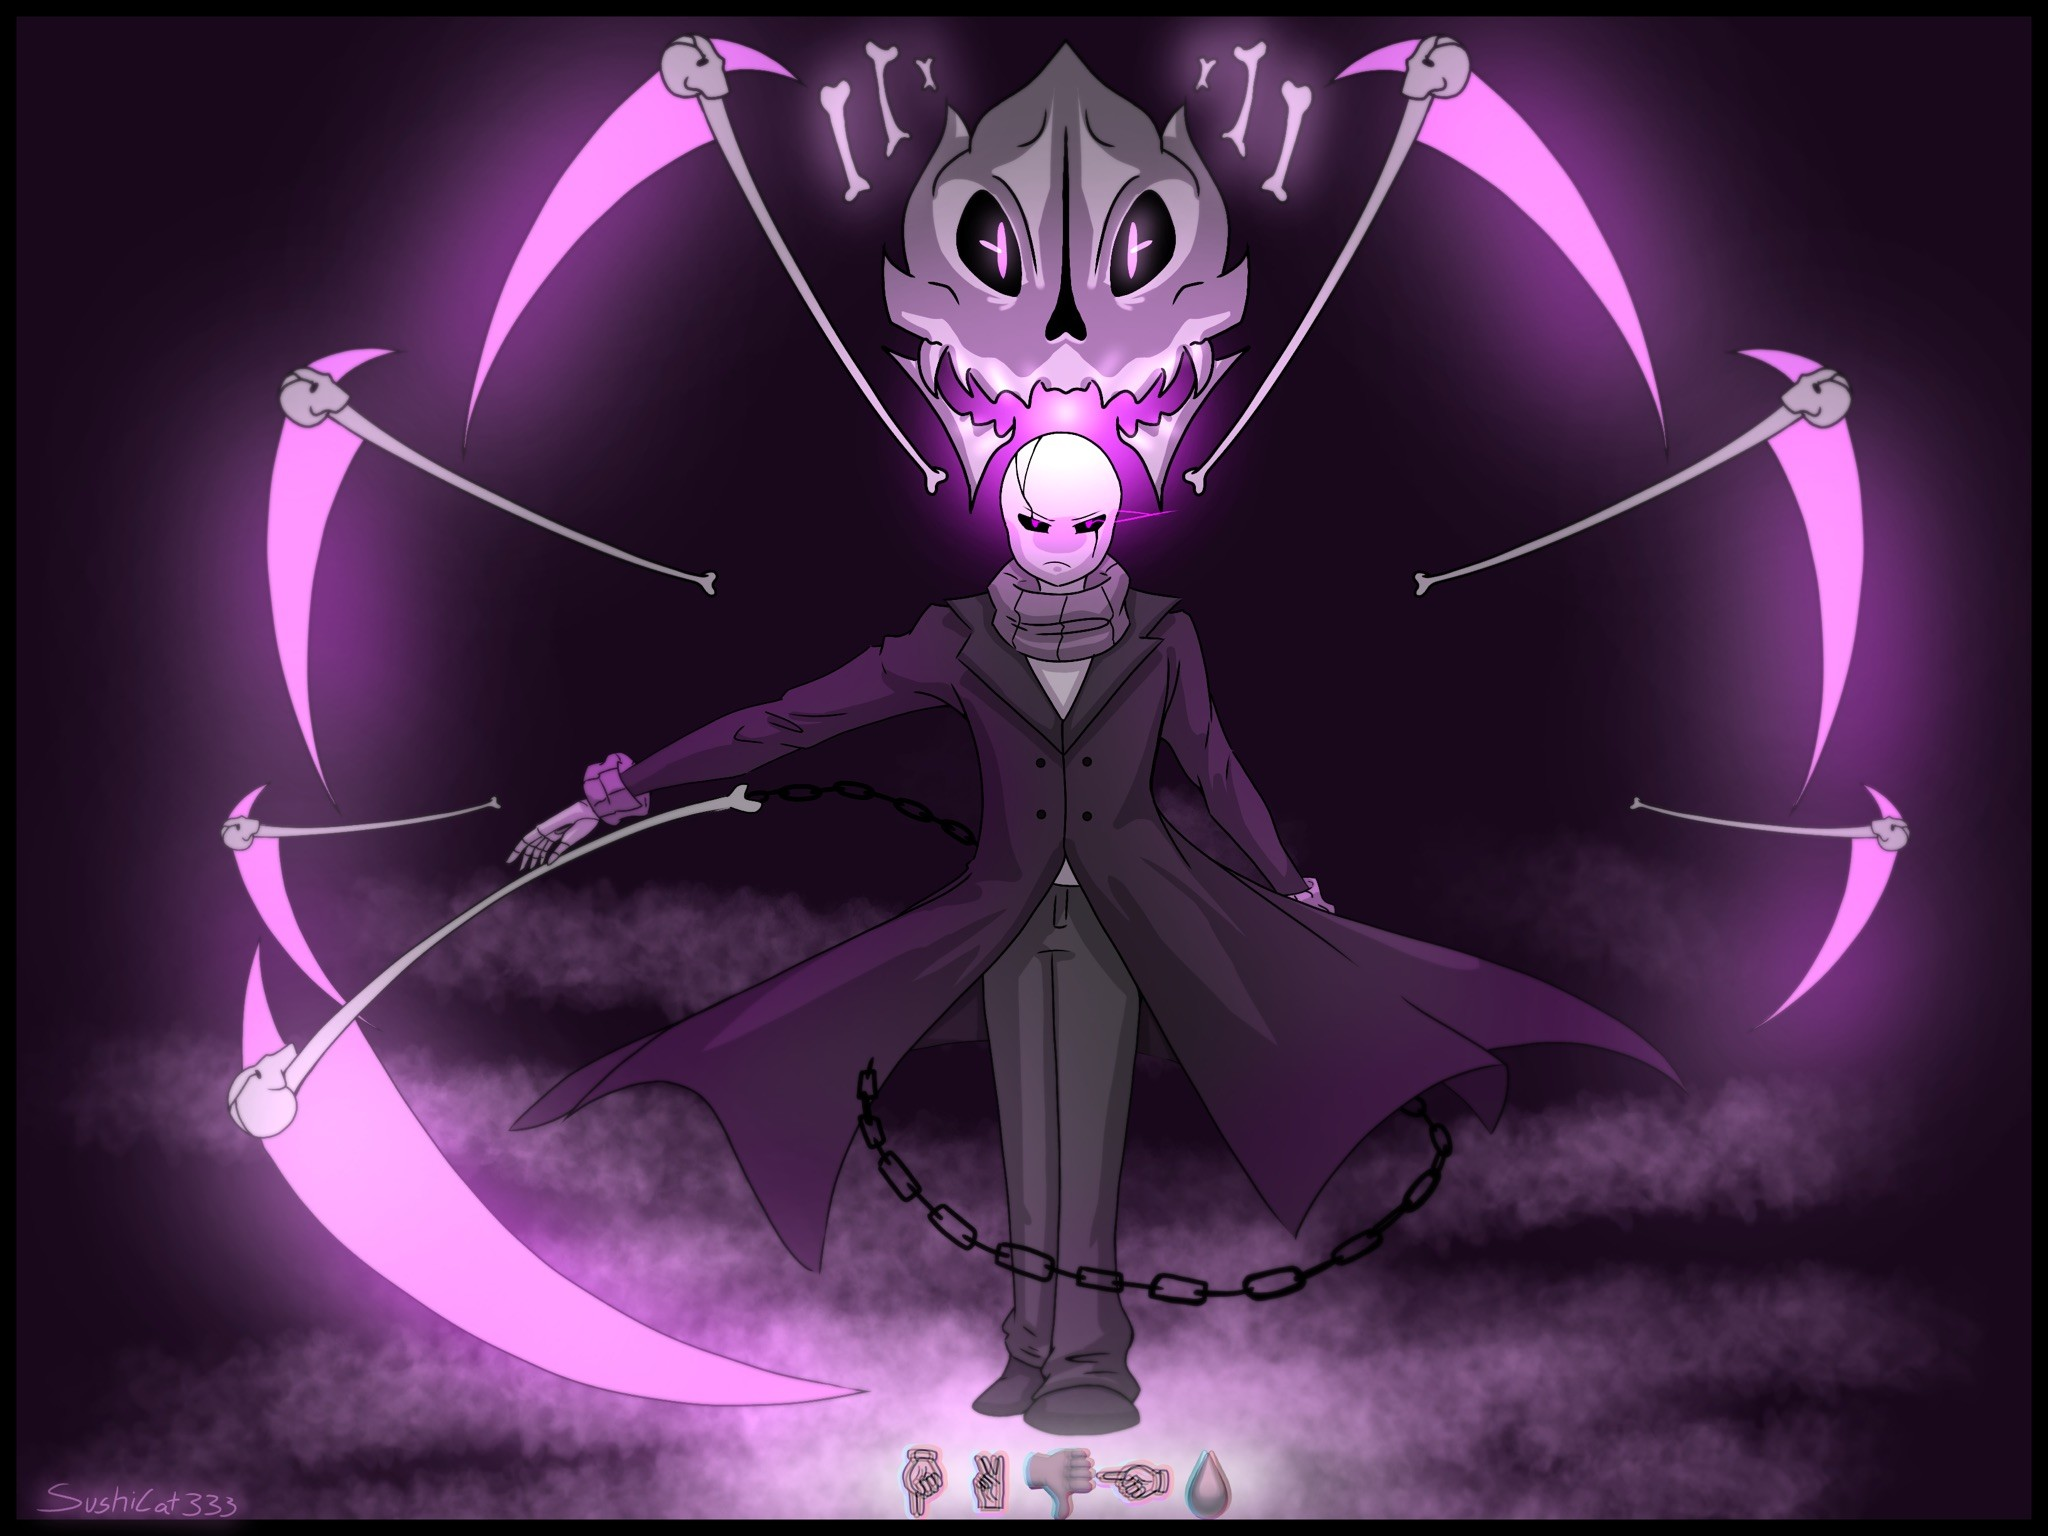 … HADES- Gaster's special attack by Sushi-Cat333